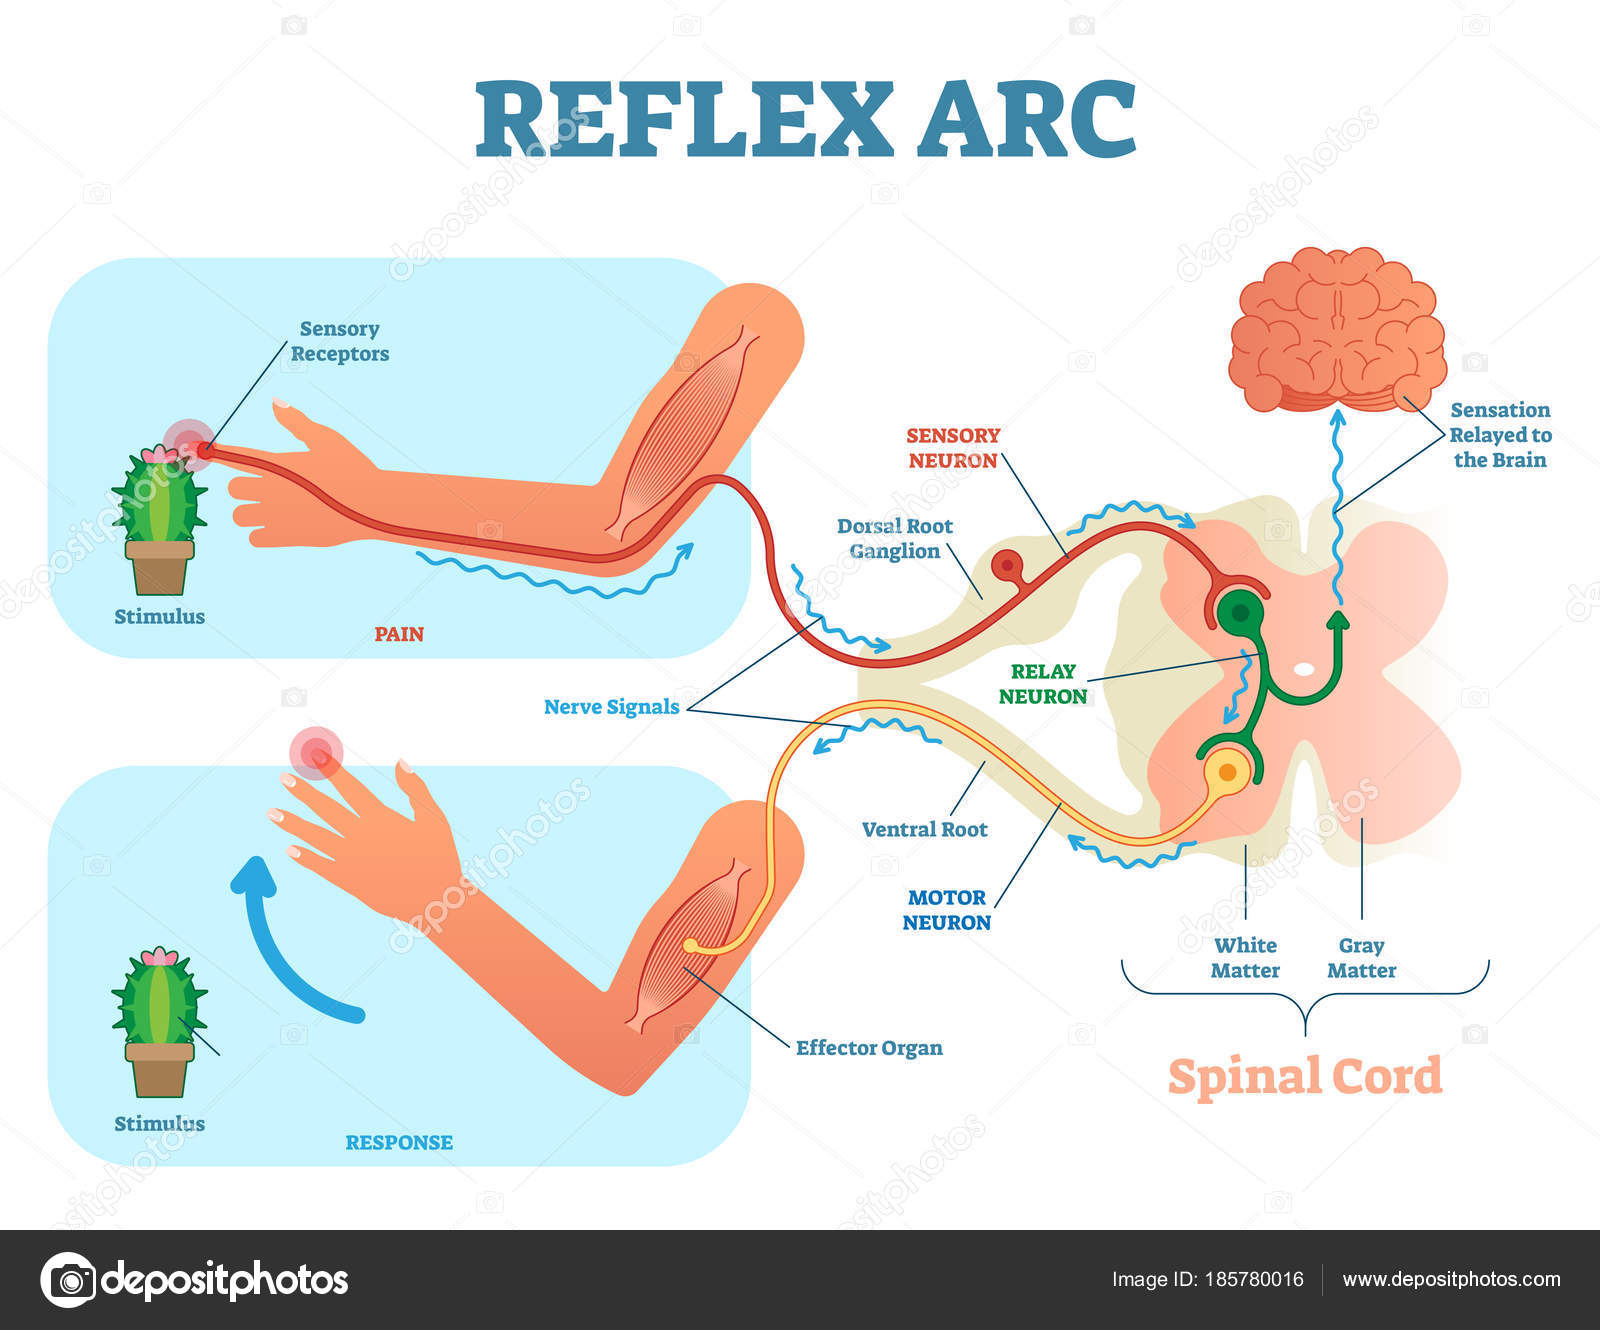 Spinal reflex arc anatomical scheme vector illustration with vector illustration with spinal cord stimulus pathway to the sensory neuron relay neuron motor neuron and muscle tissue educational diagram ccuart Gallery